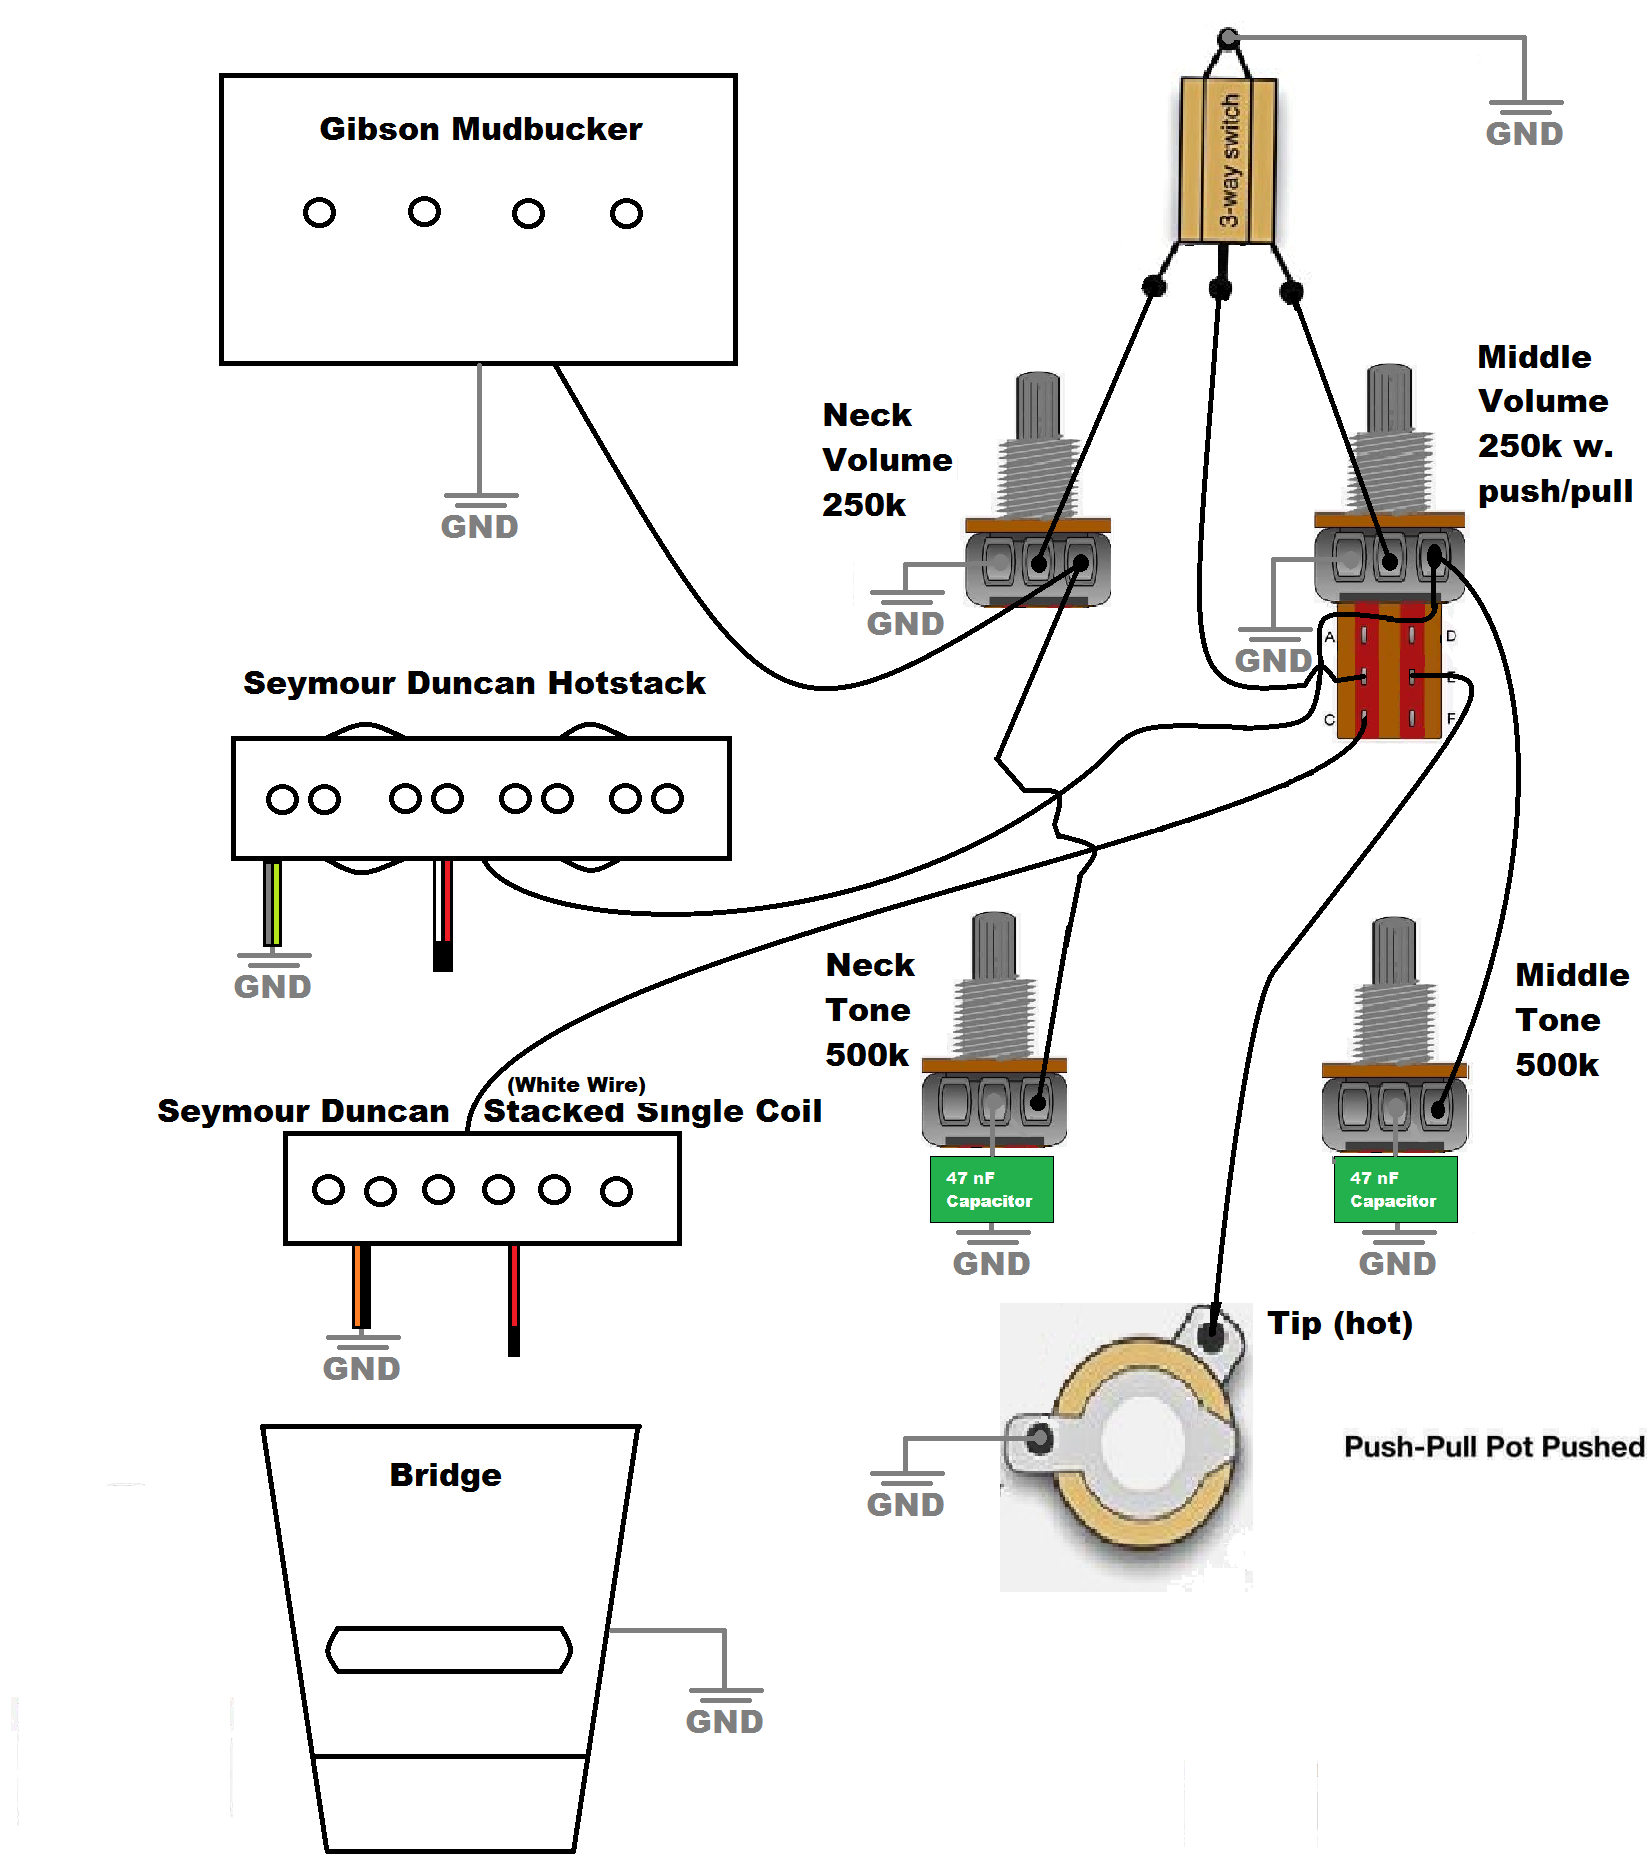 rickenbacker wiring official site wiring diagramsRickenbacker 360 Wiring Diagram #2